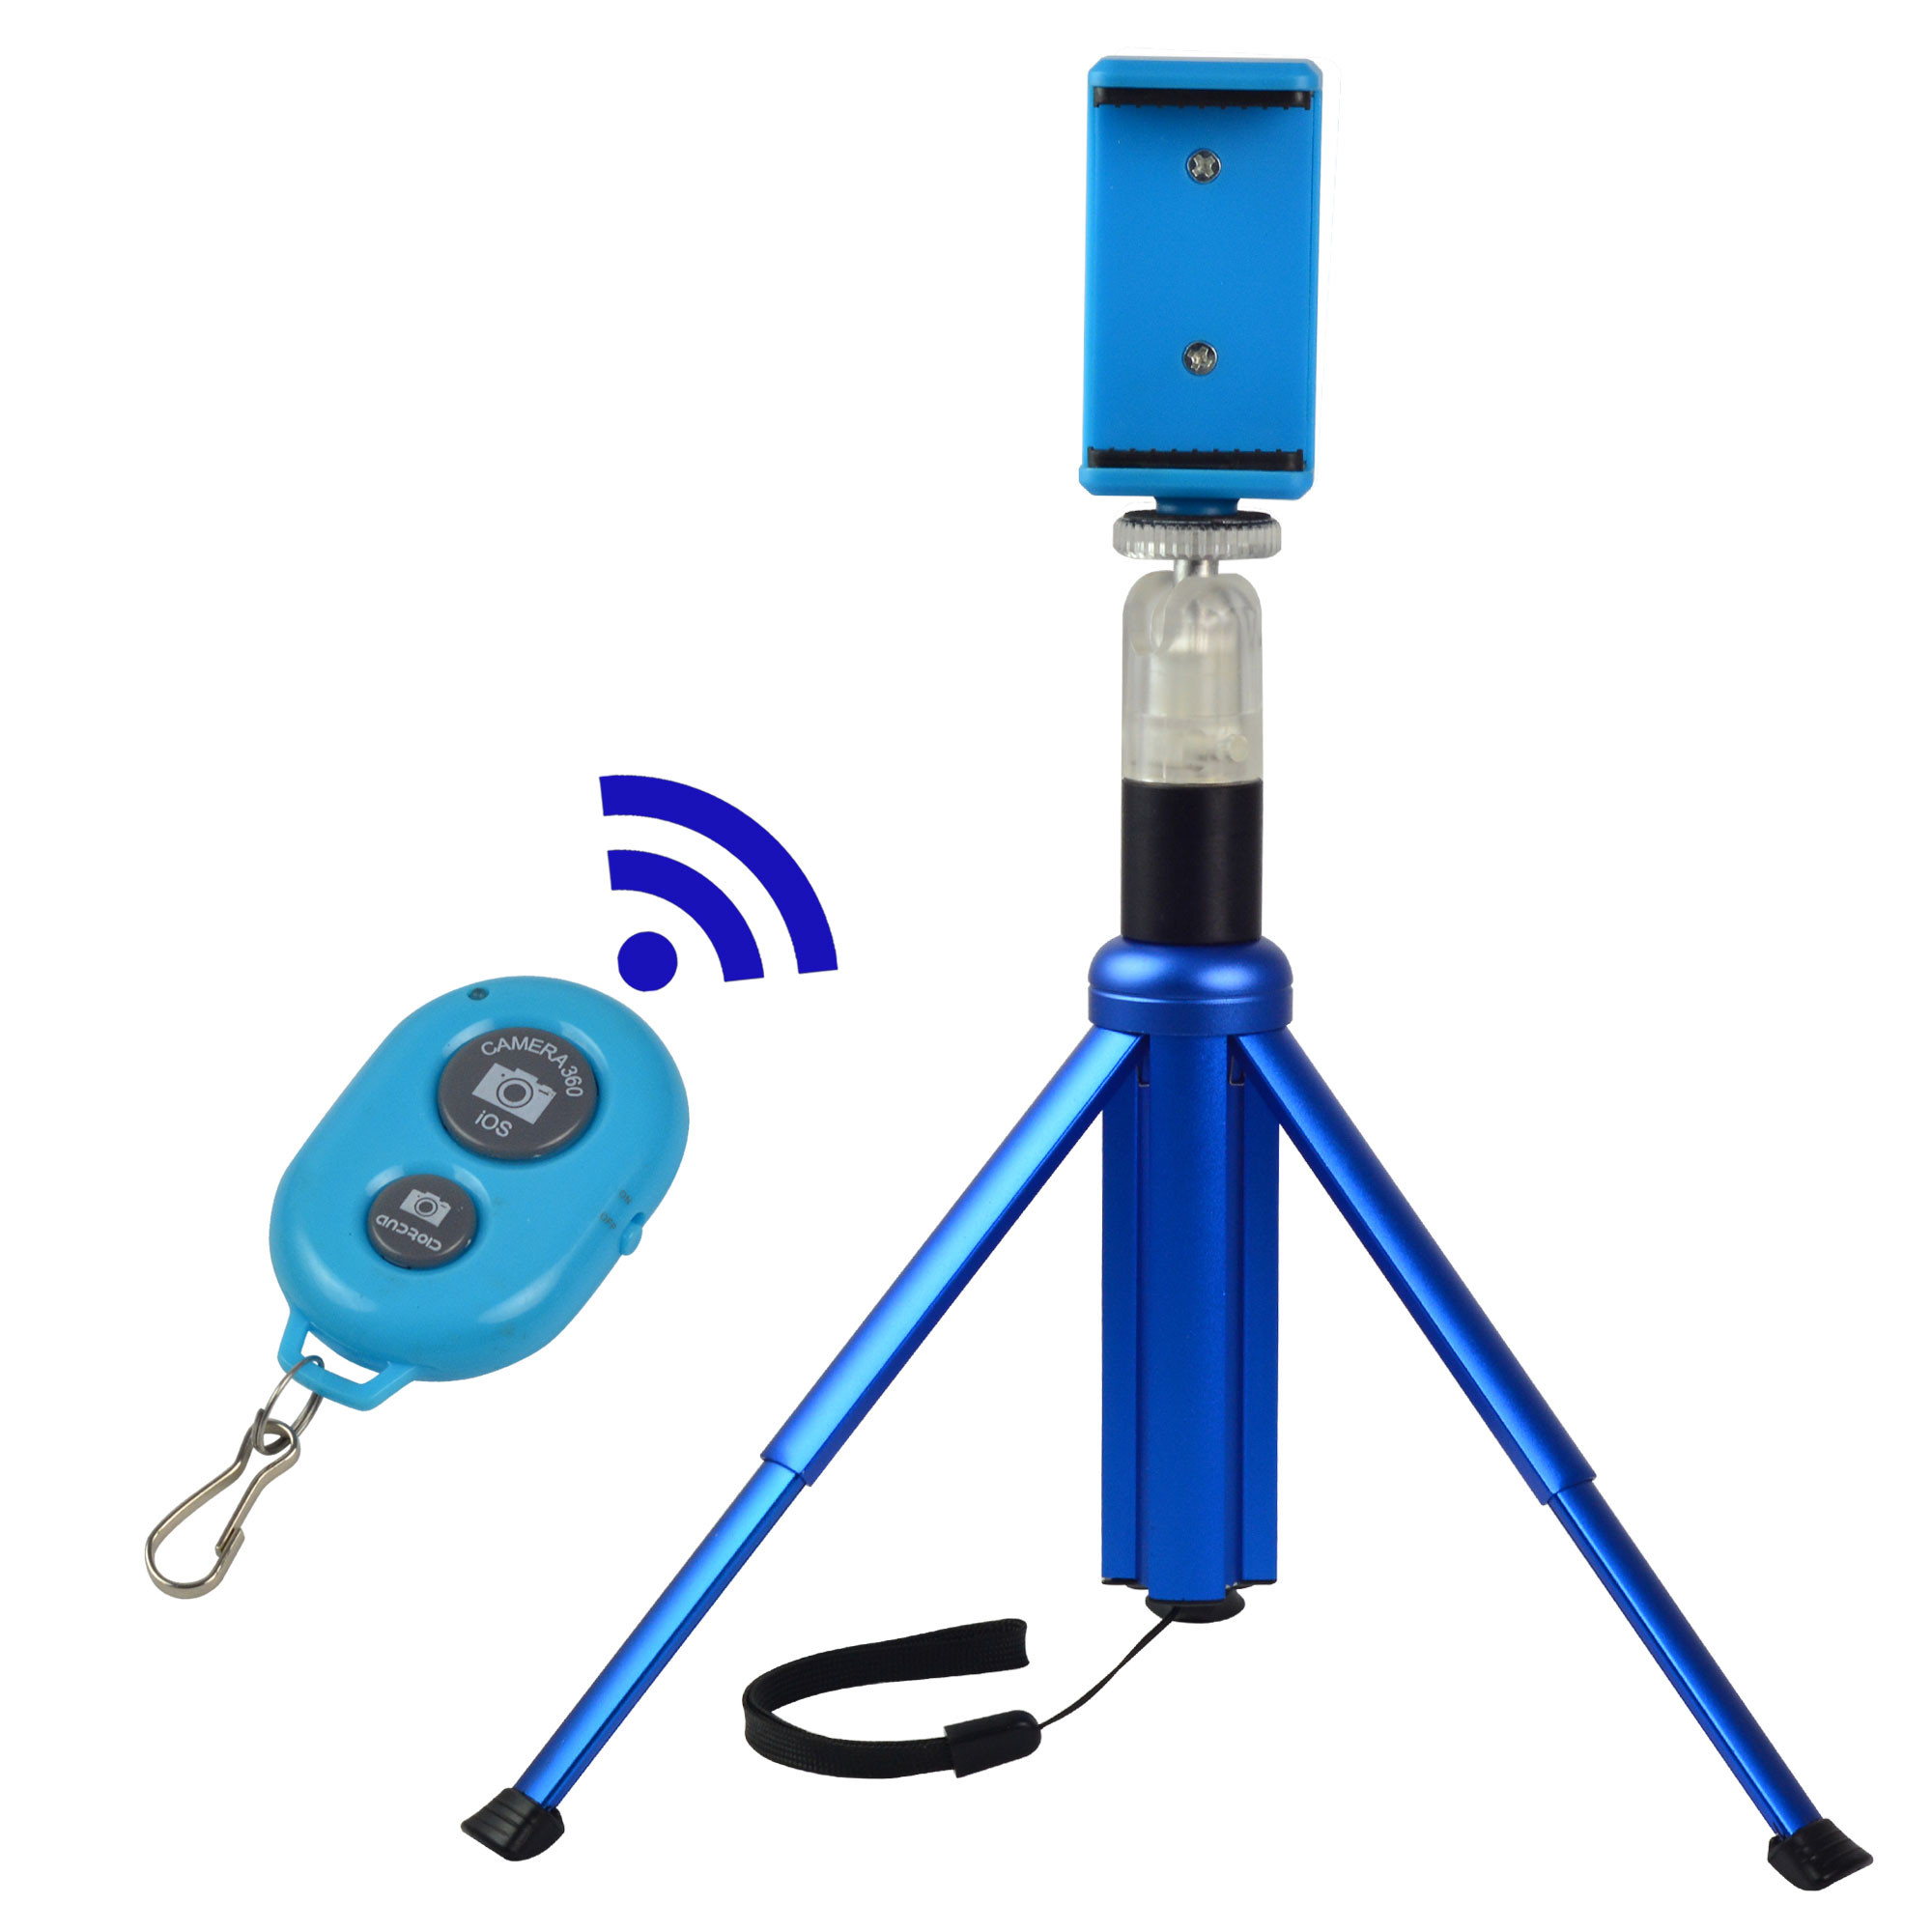 MENGS® M602B 3 in 1 Bluetooth remote control selfie stick/tabletop tripod/ monopod with plastic Ball Head for iPhone 6s Plus Samsung Galary edge Huawei Xiaomi Gopro Hero - Blue